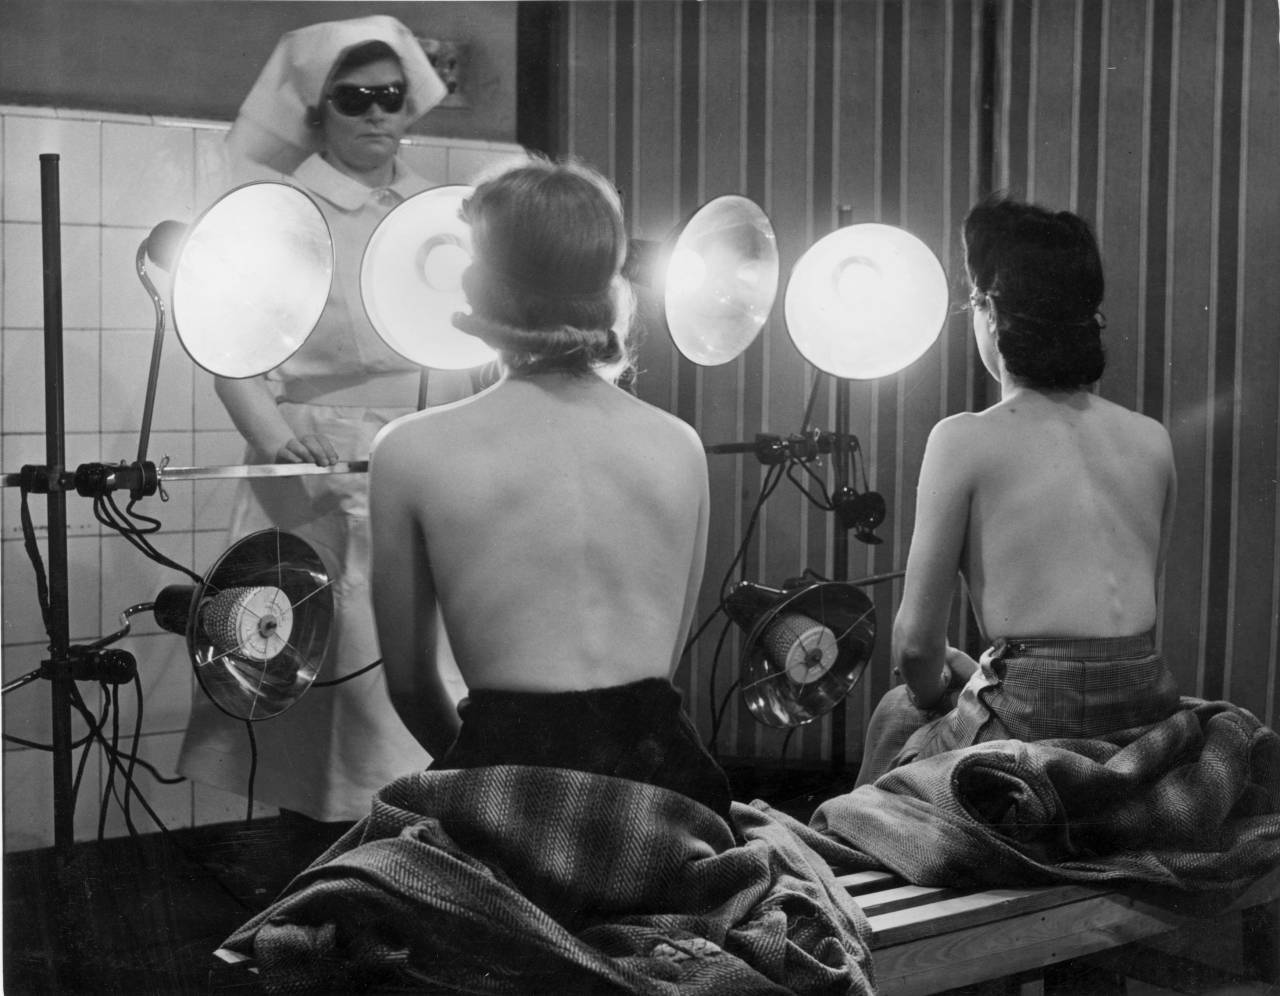 17th April 1942:  Civil Defence Workers in Finsbury are beating the winter pallor with free sun lamp treatments. They call it 'Mixray' at the Finsbury Health Centre, and it was designed by two Czechoslovak inventors.  (Photo by Harry Todd/Fox Photos/Getty Images)